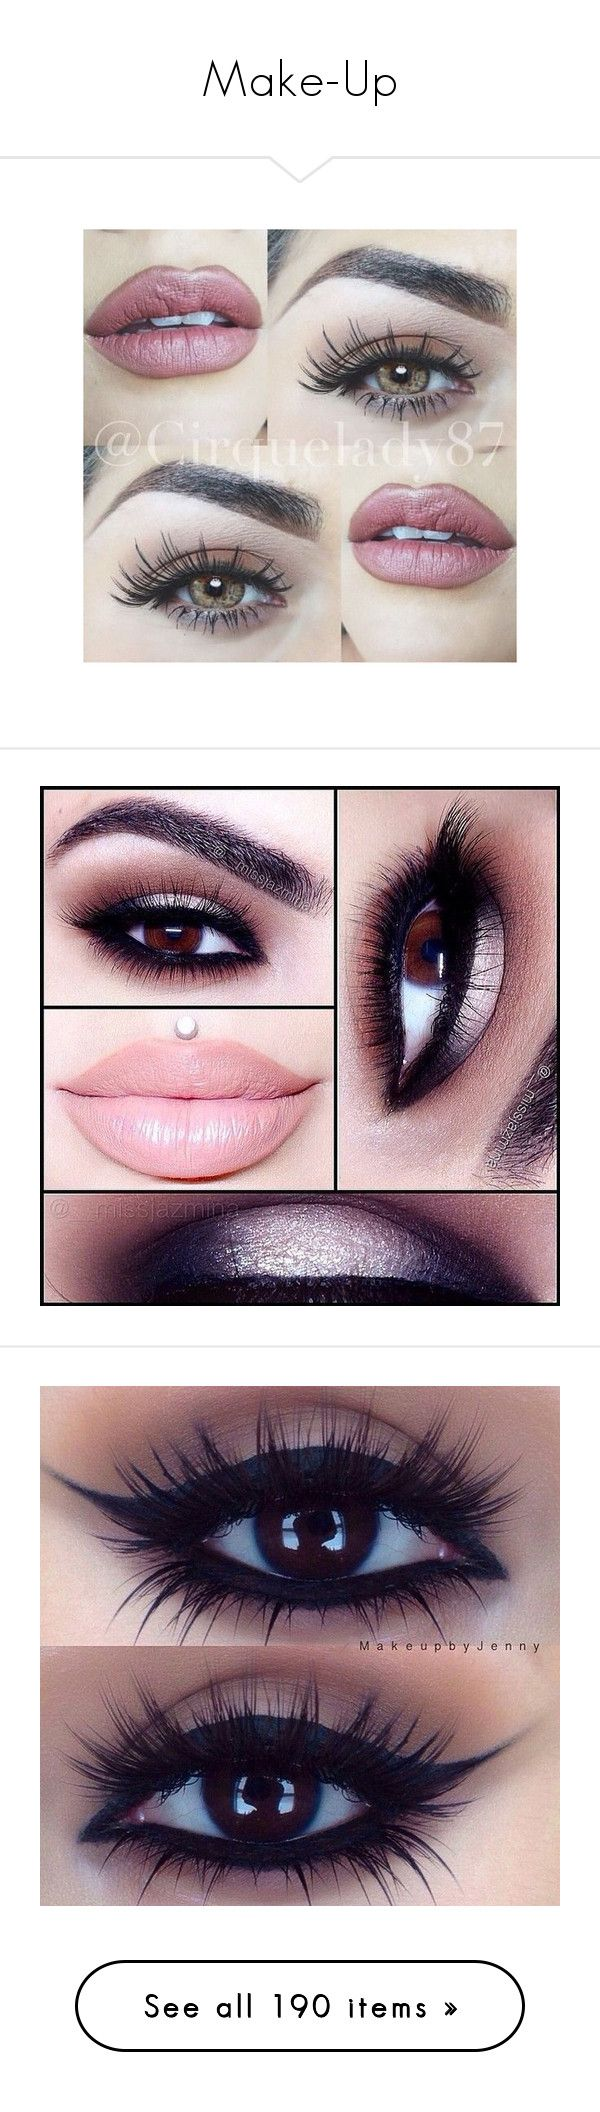 """""""Make-Up"""" by gisella-jb-pintos ❤ liked on Polyvore featuring beauty products, makeup, eyes, eye makeup, lips, beauty, maquiagem, fillers, gloss makeup and glossy eye makeup"""